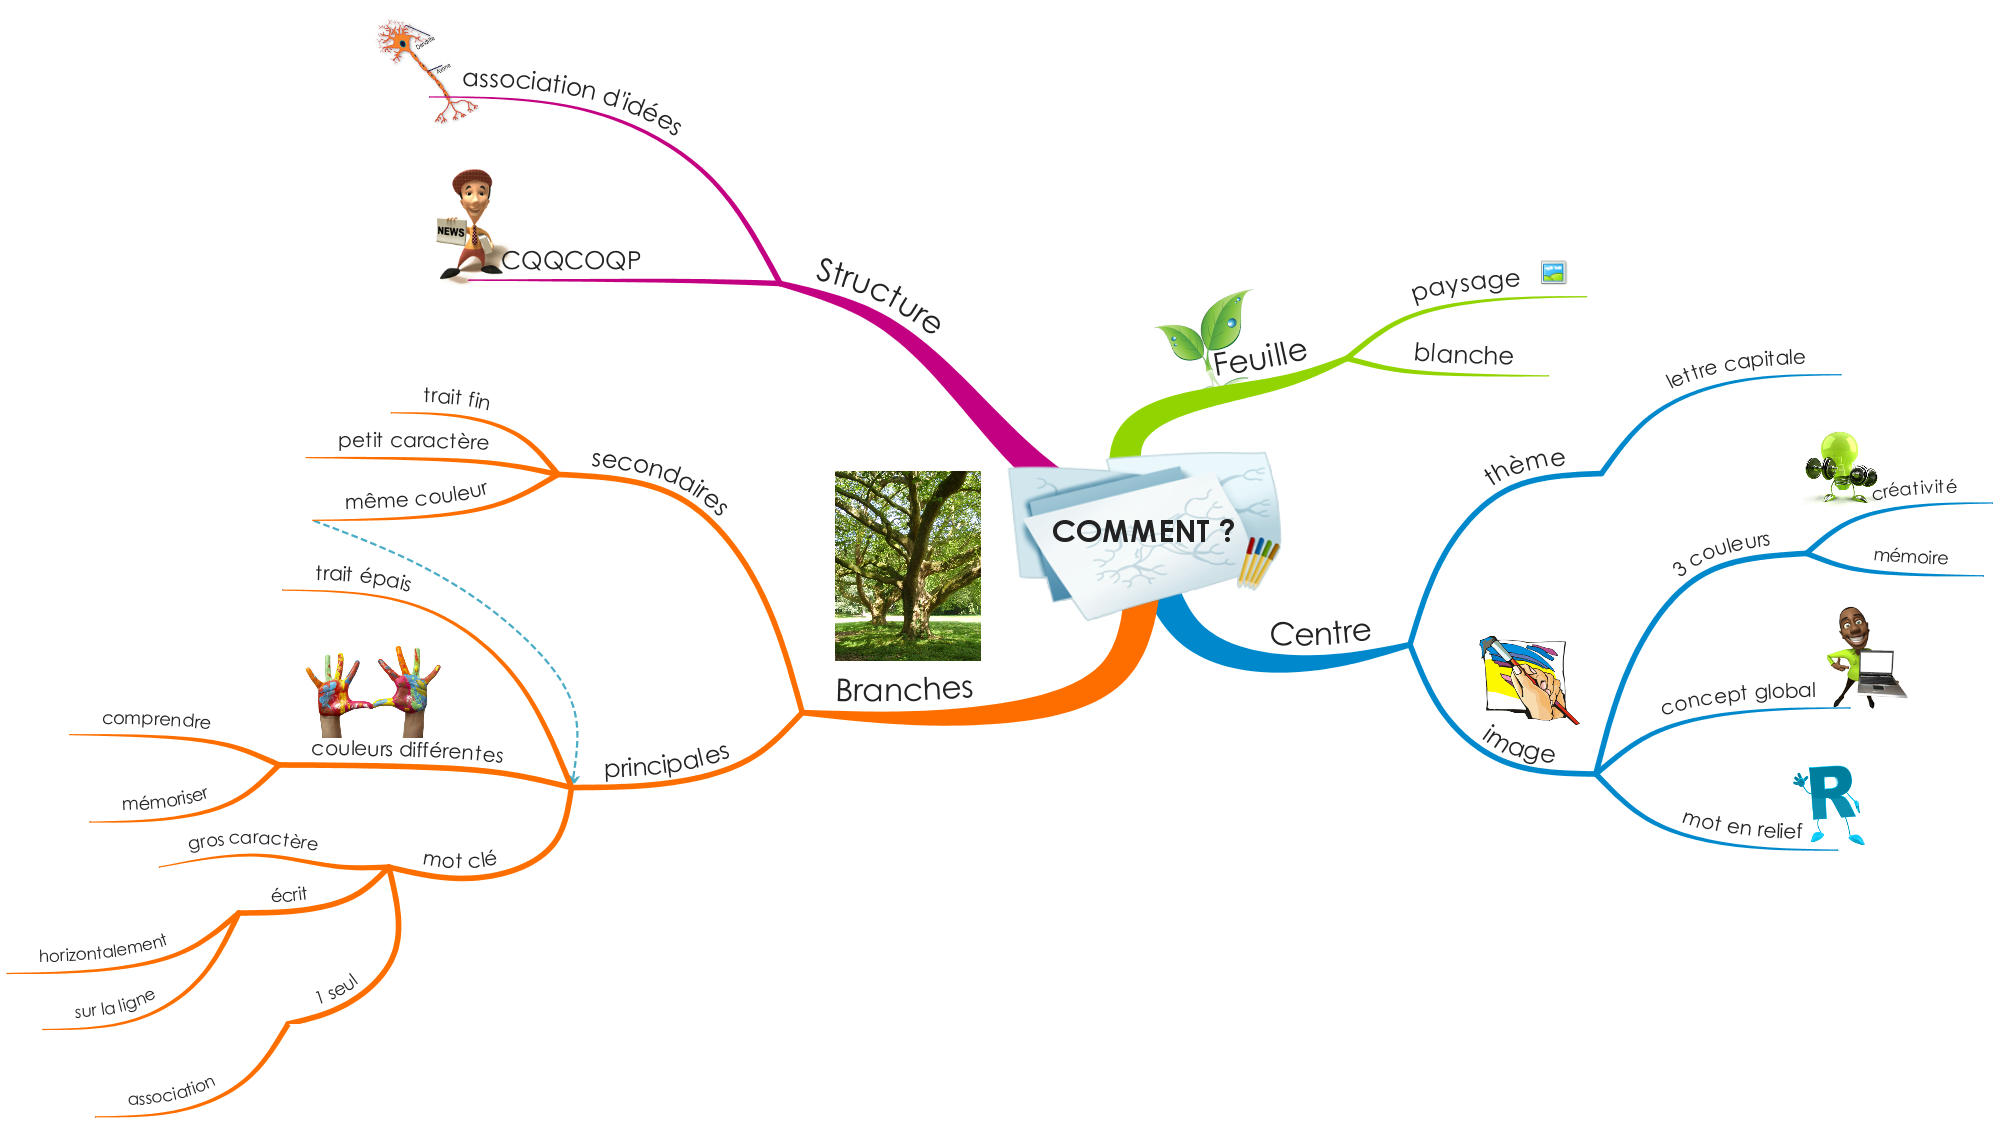 exemple de mind map envoy u00e9 par une  u00e9tudiante